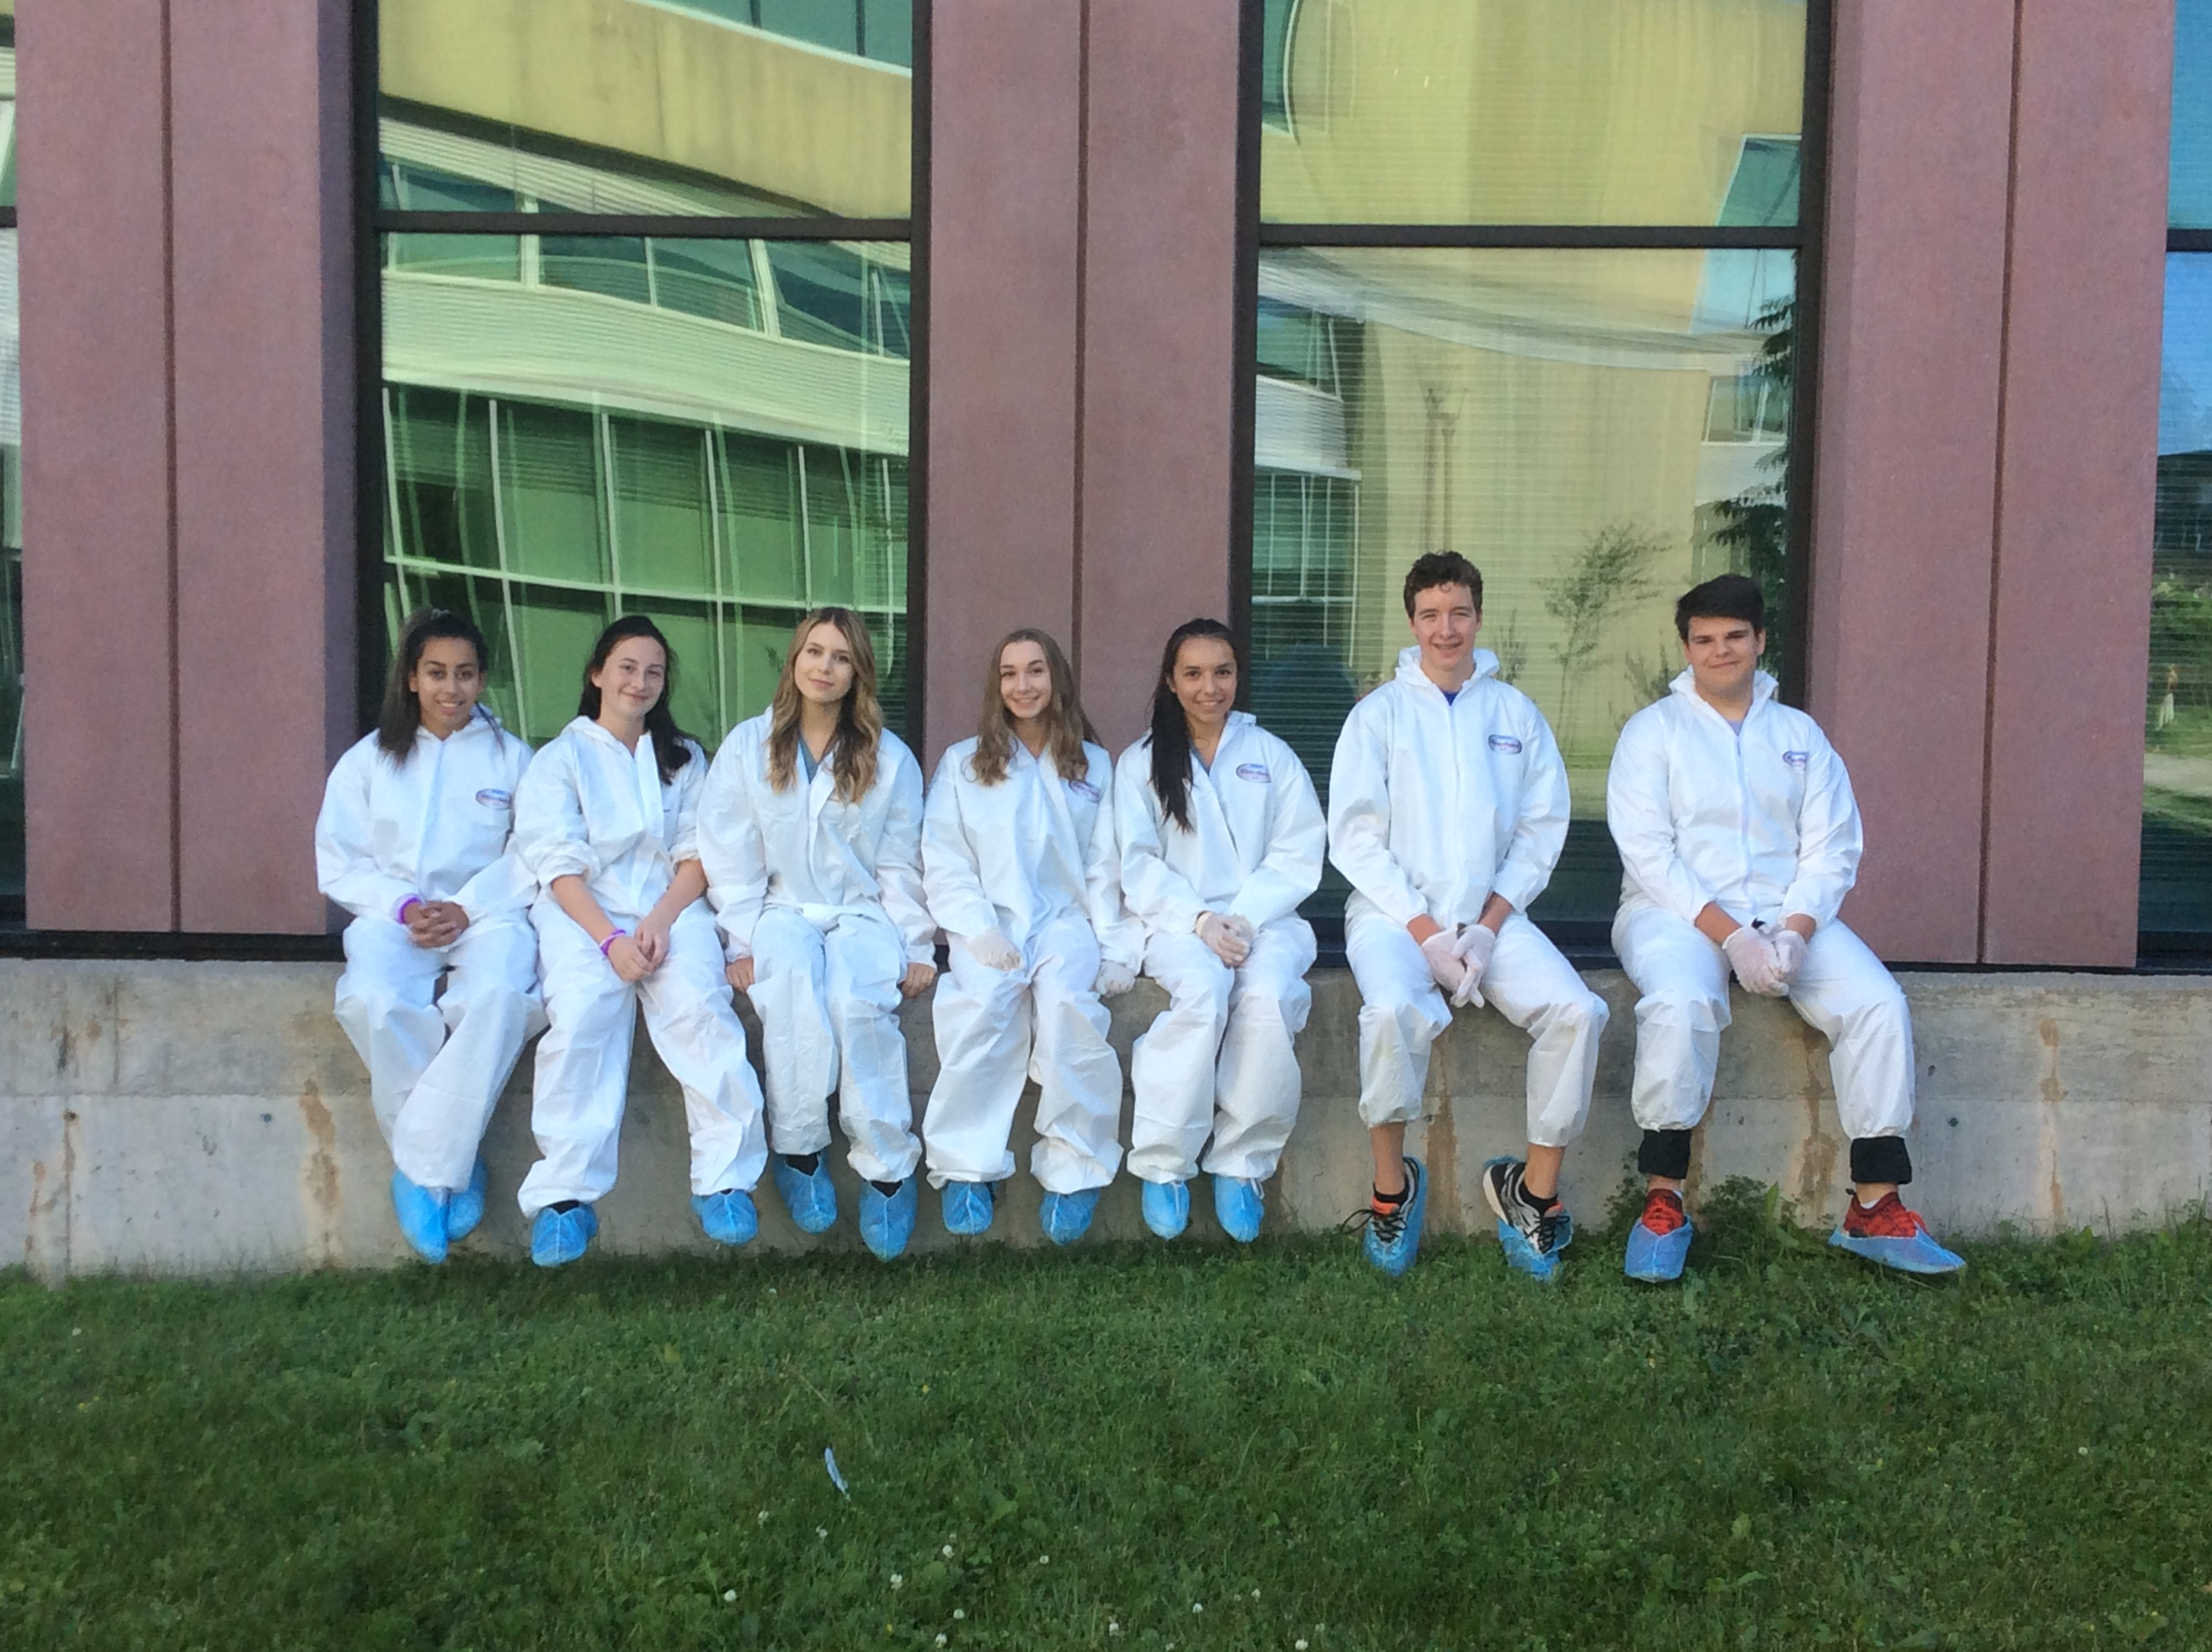 Camper group poses for photo while sitting on a cement retaining wall wearing white painter's coveralls and blue booties